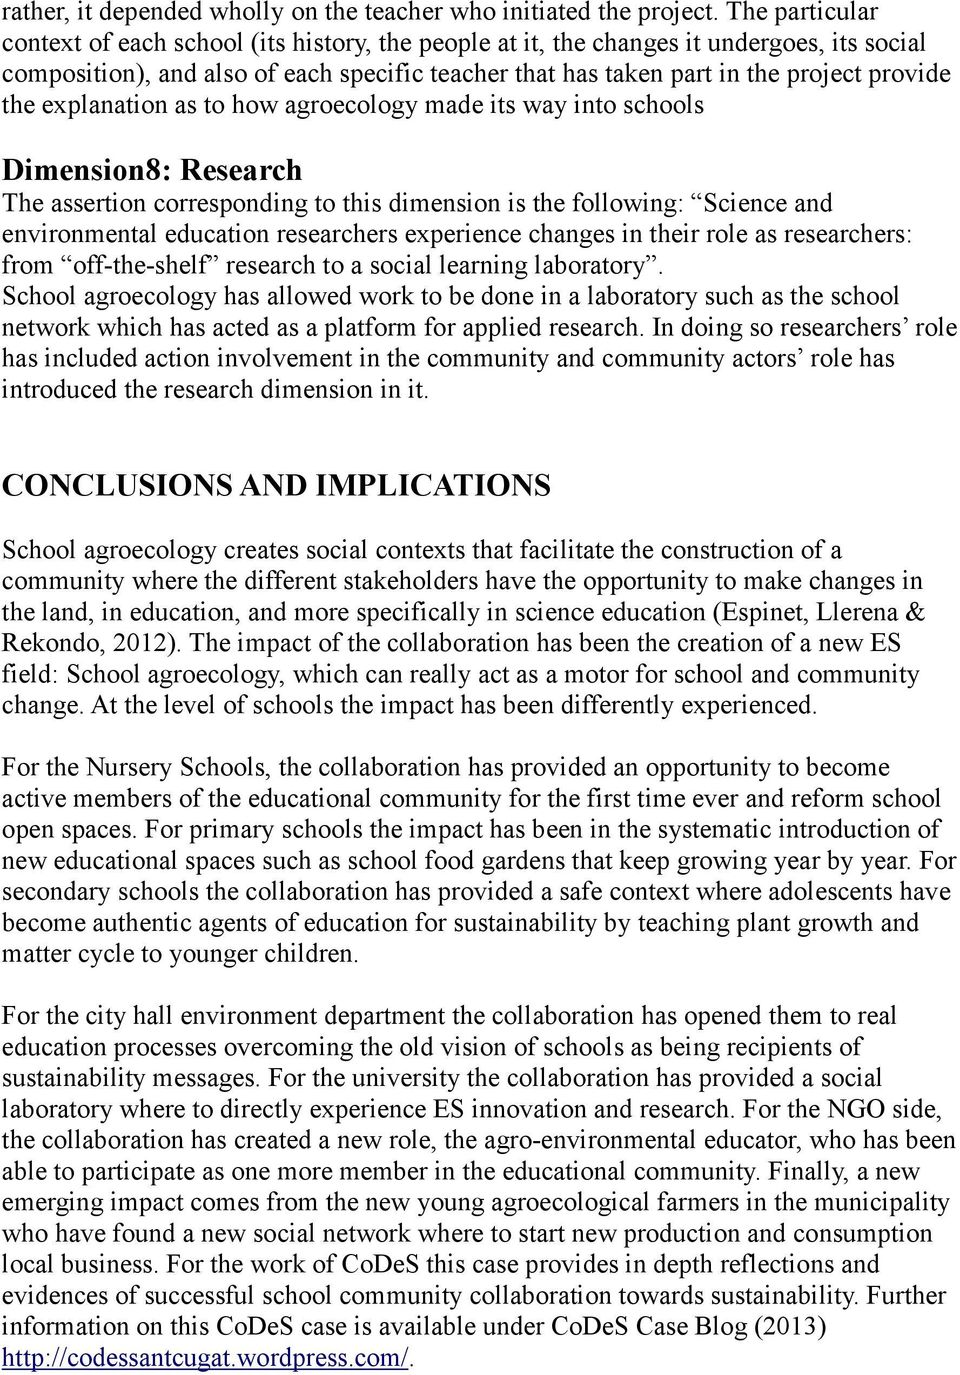 the explanation as to how agroecology made its way into schools Dimension8: Research The assertion corresponding to this dimension is the following: Science and environmental education researchers